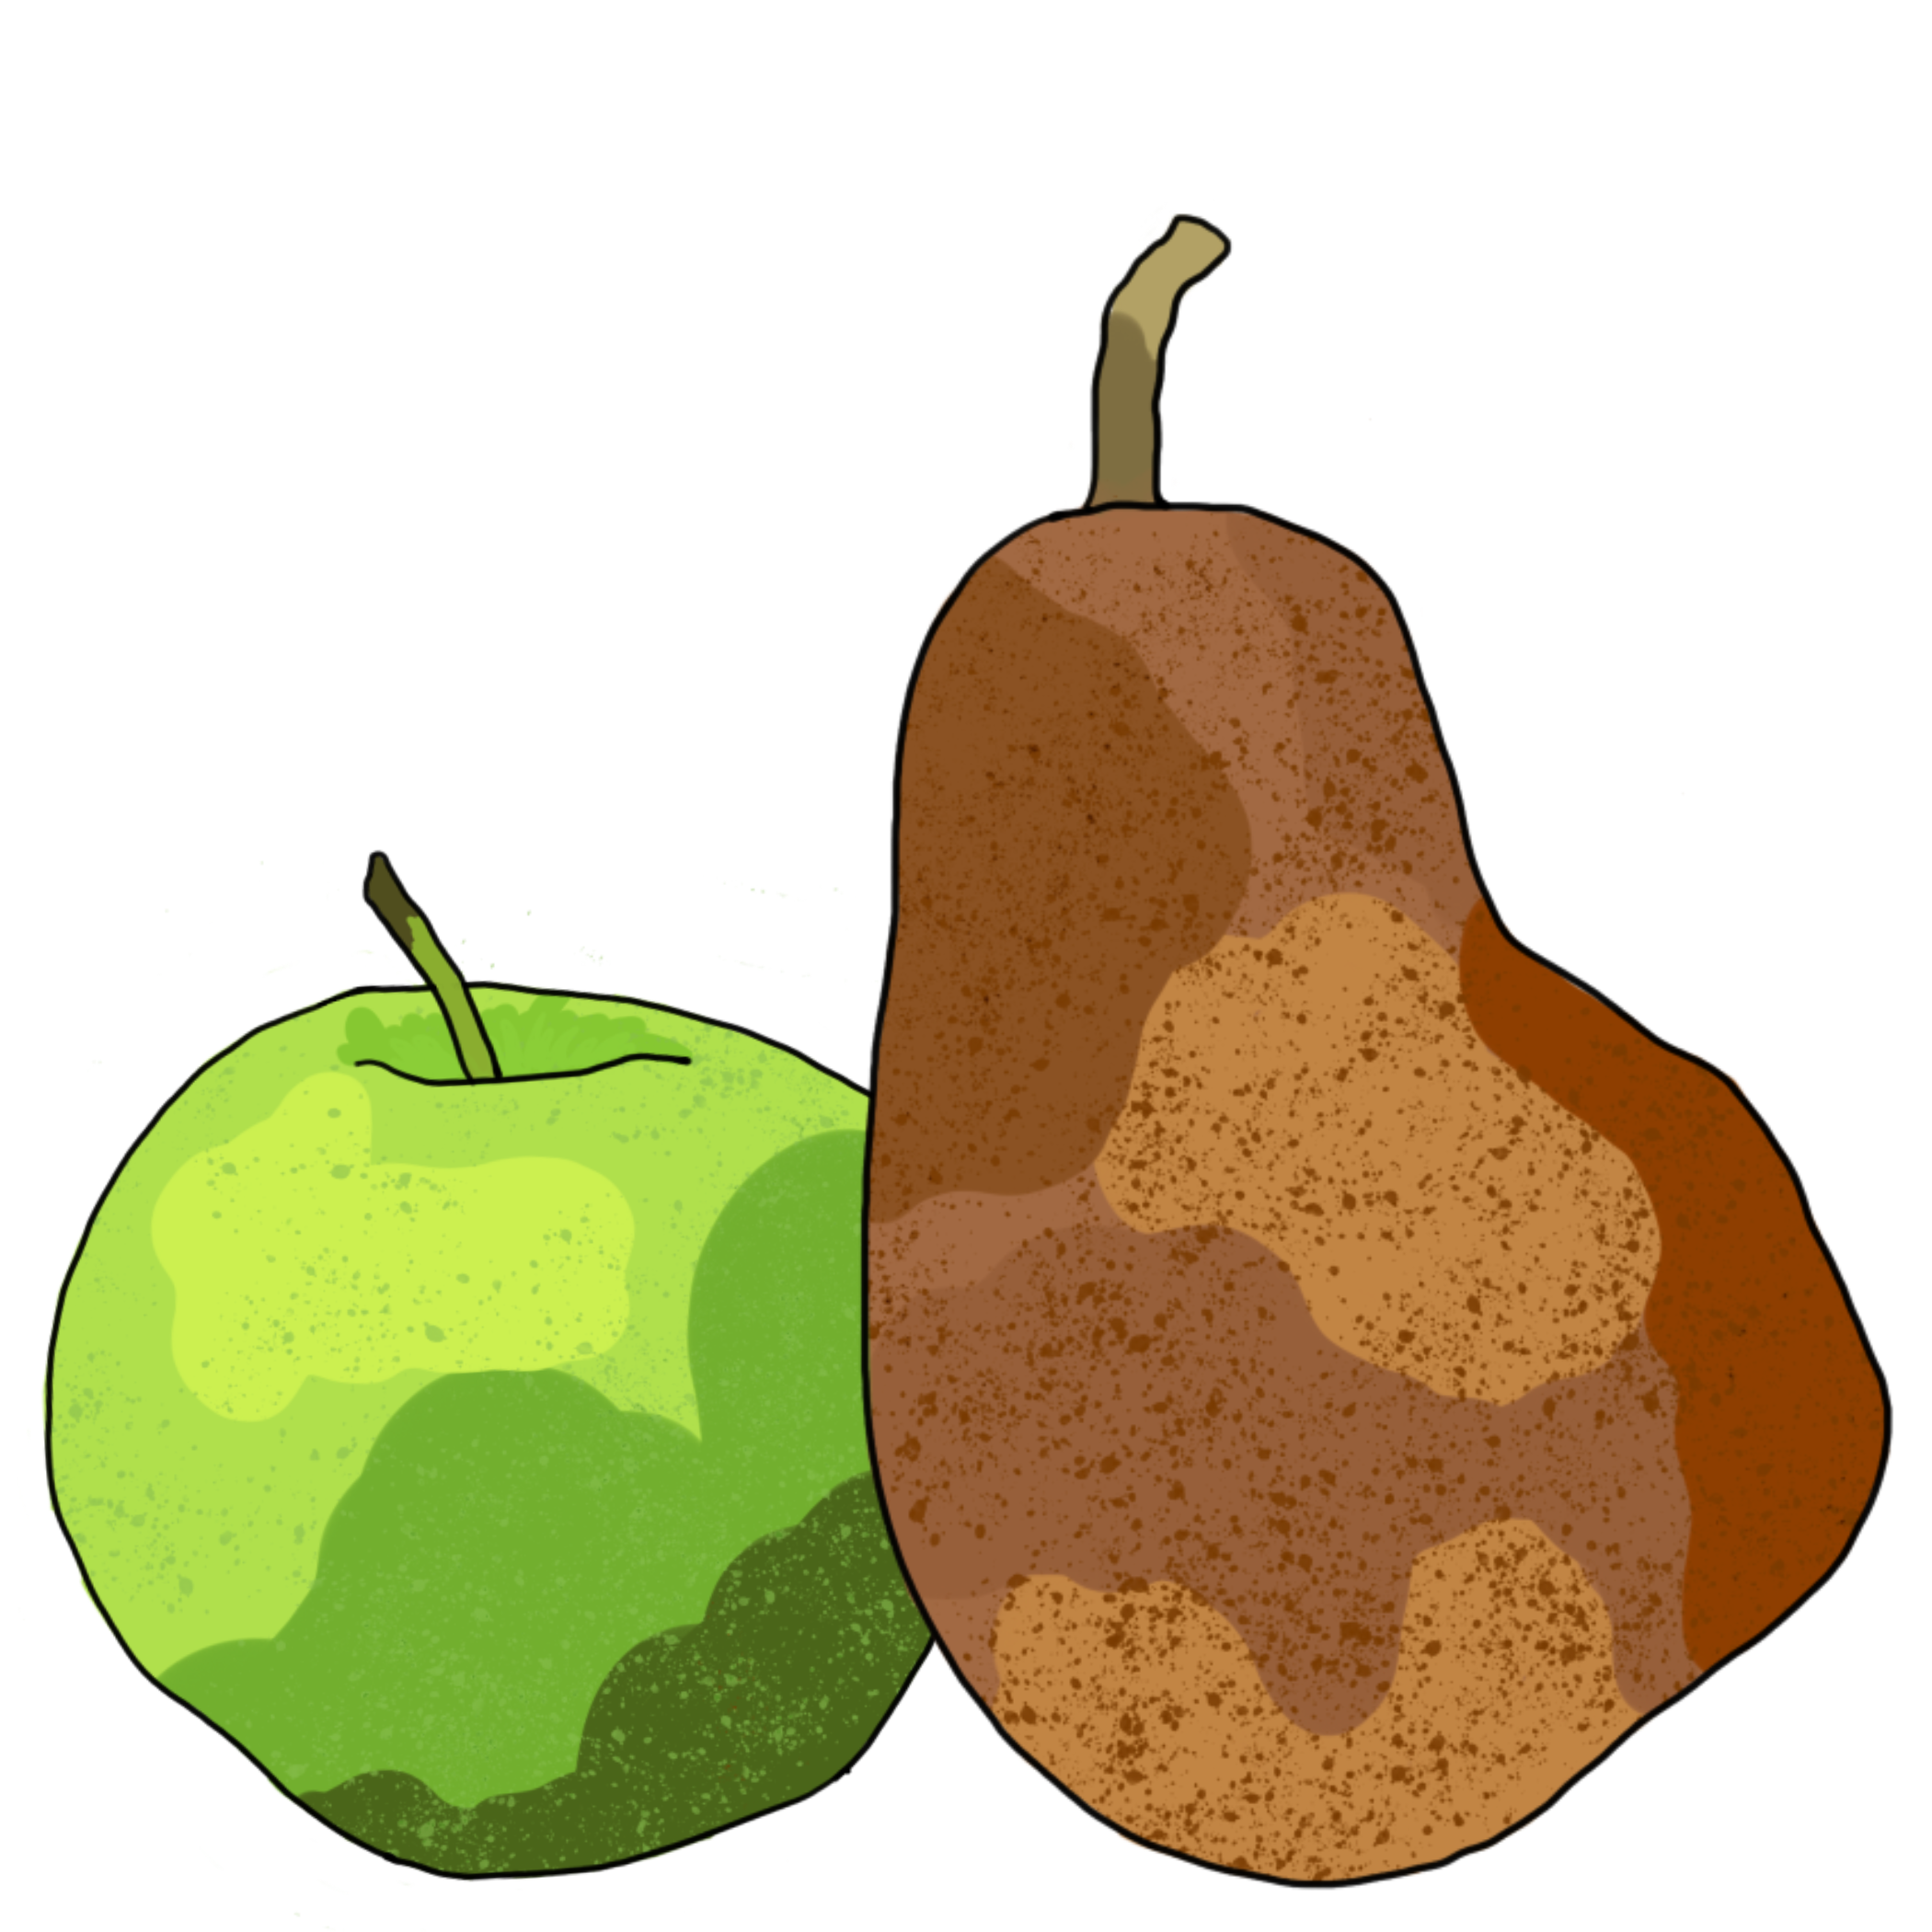 jordan_kushins_pear_apple.png